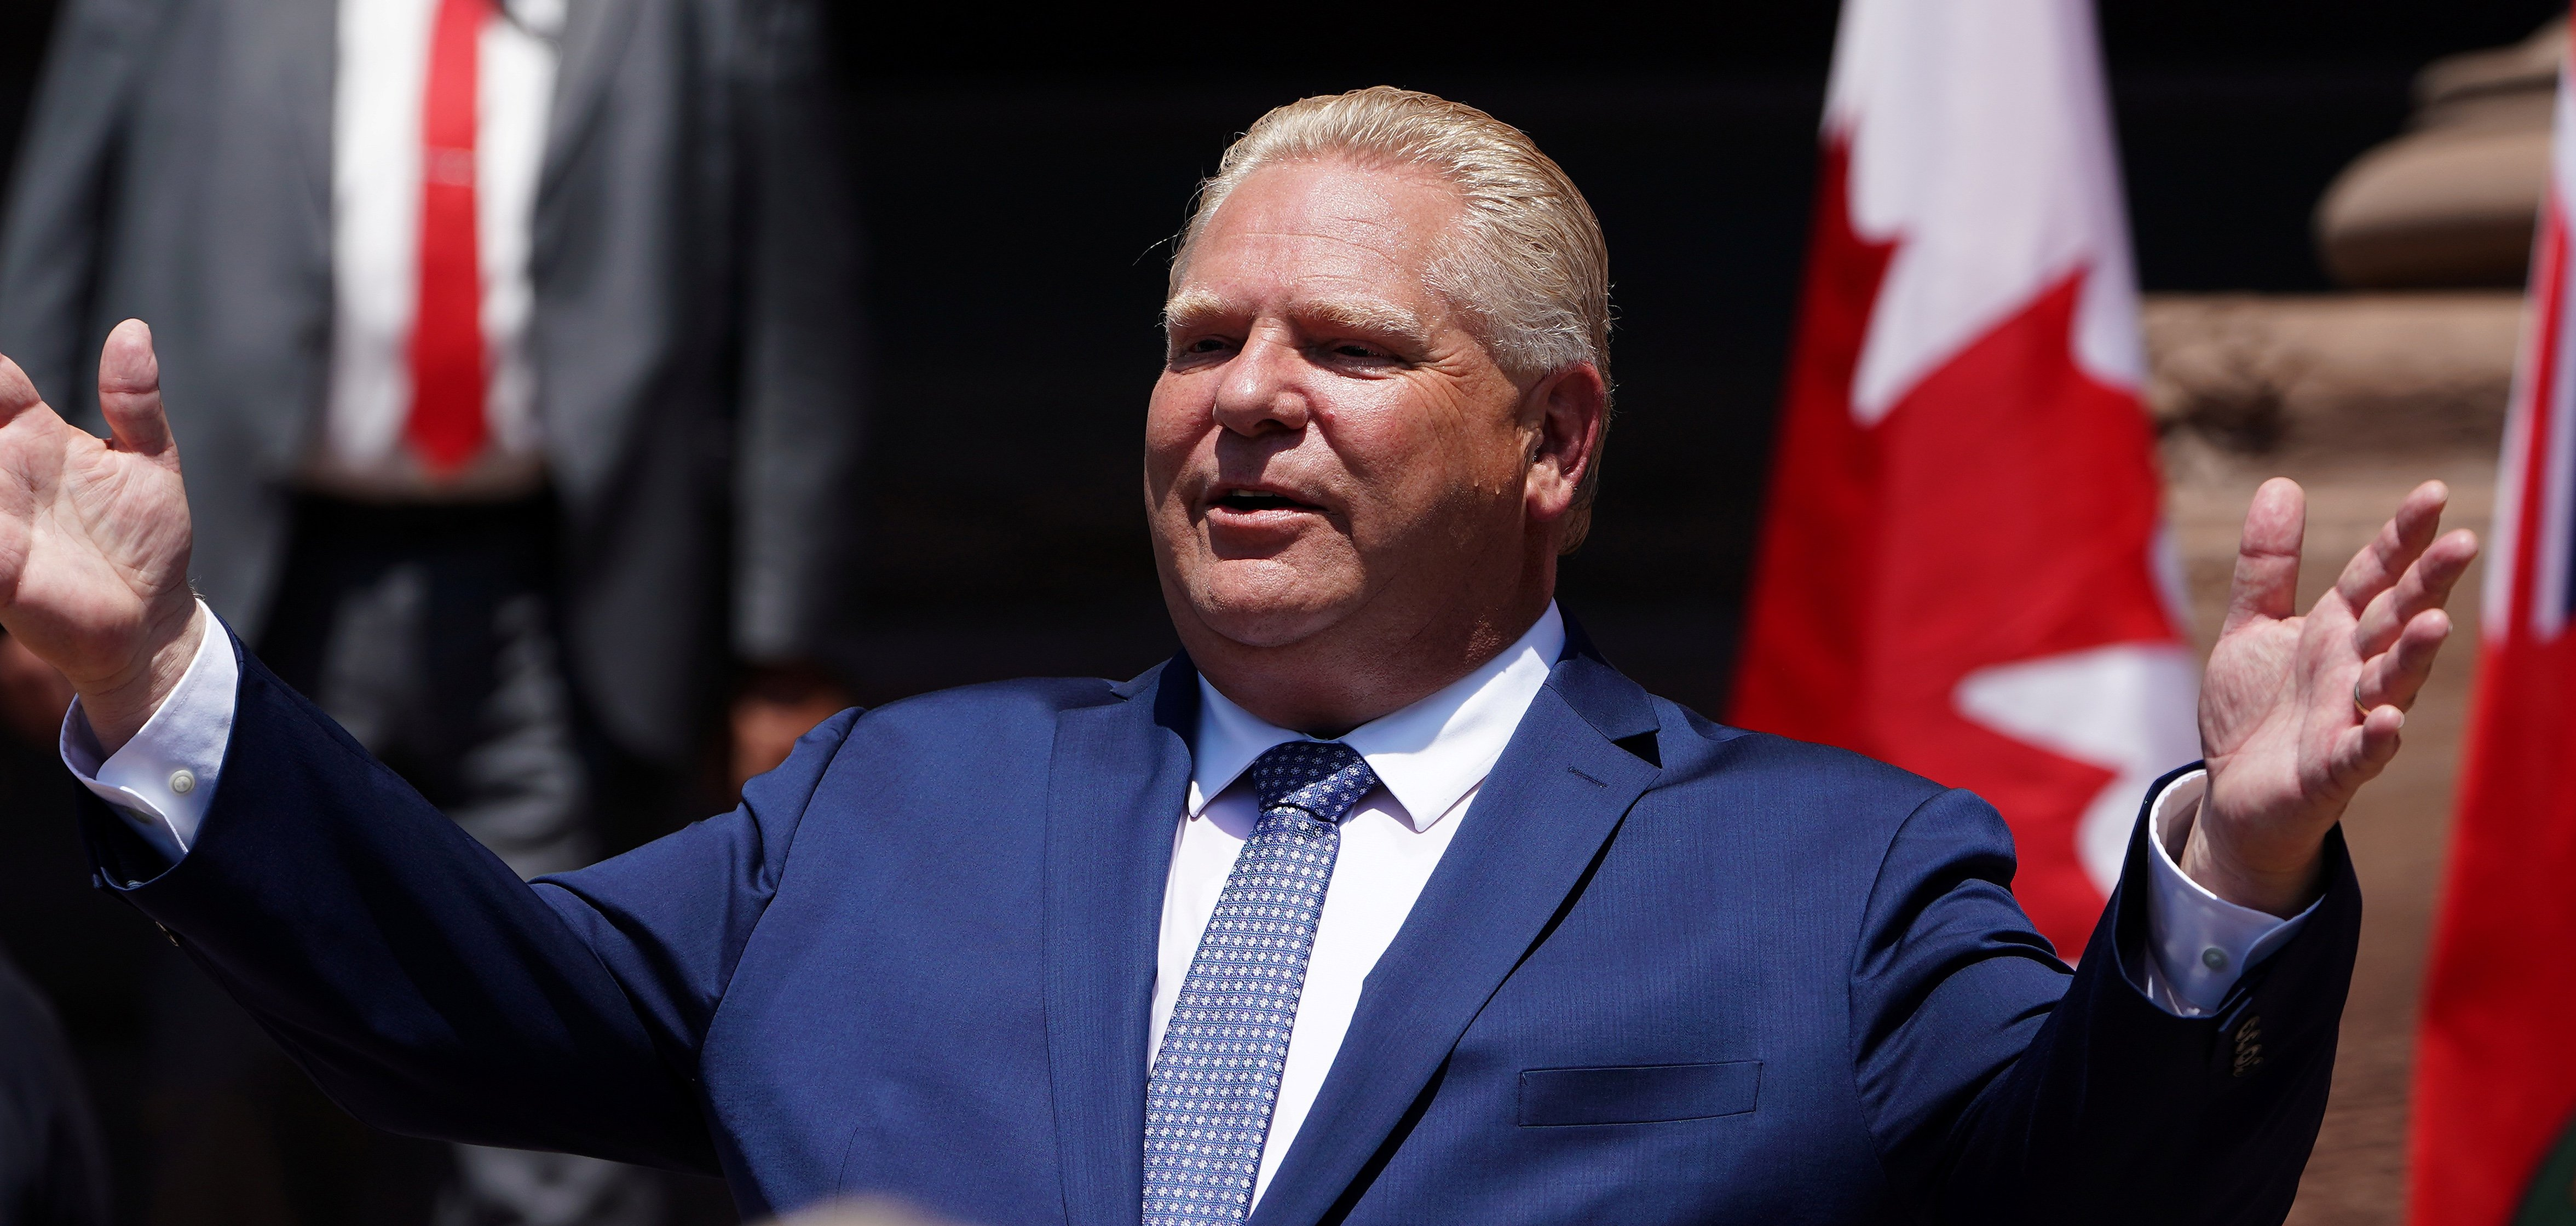 Ontario Premier Doug Ford gestures as he speaks during his unofficial swearing in ceremony in Toronto, Ontario, Canada, June 29, 2018. REUTERS/Carlo Allegri - RC183E9B2B20